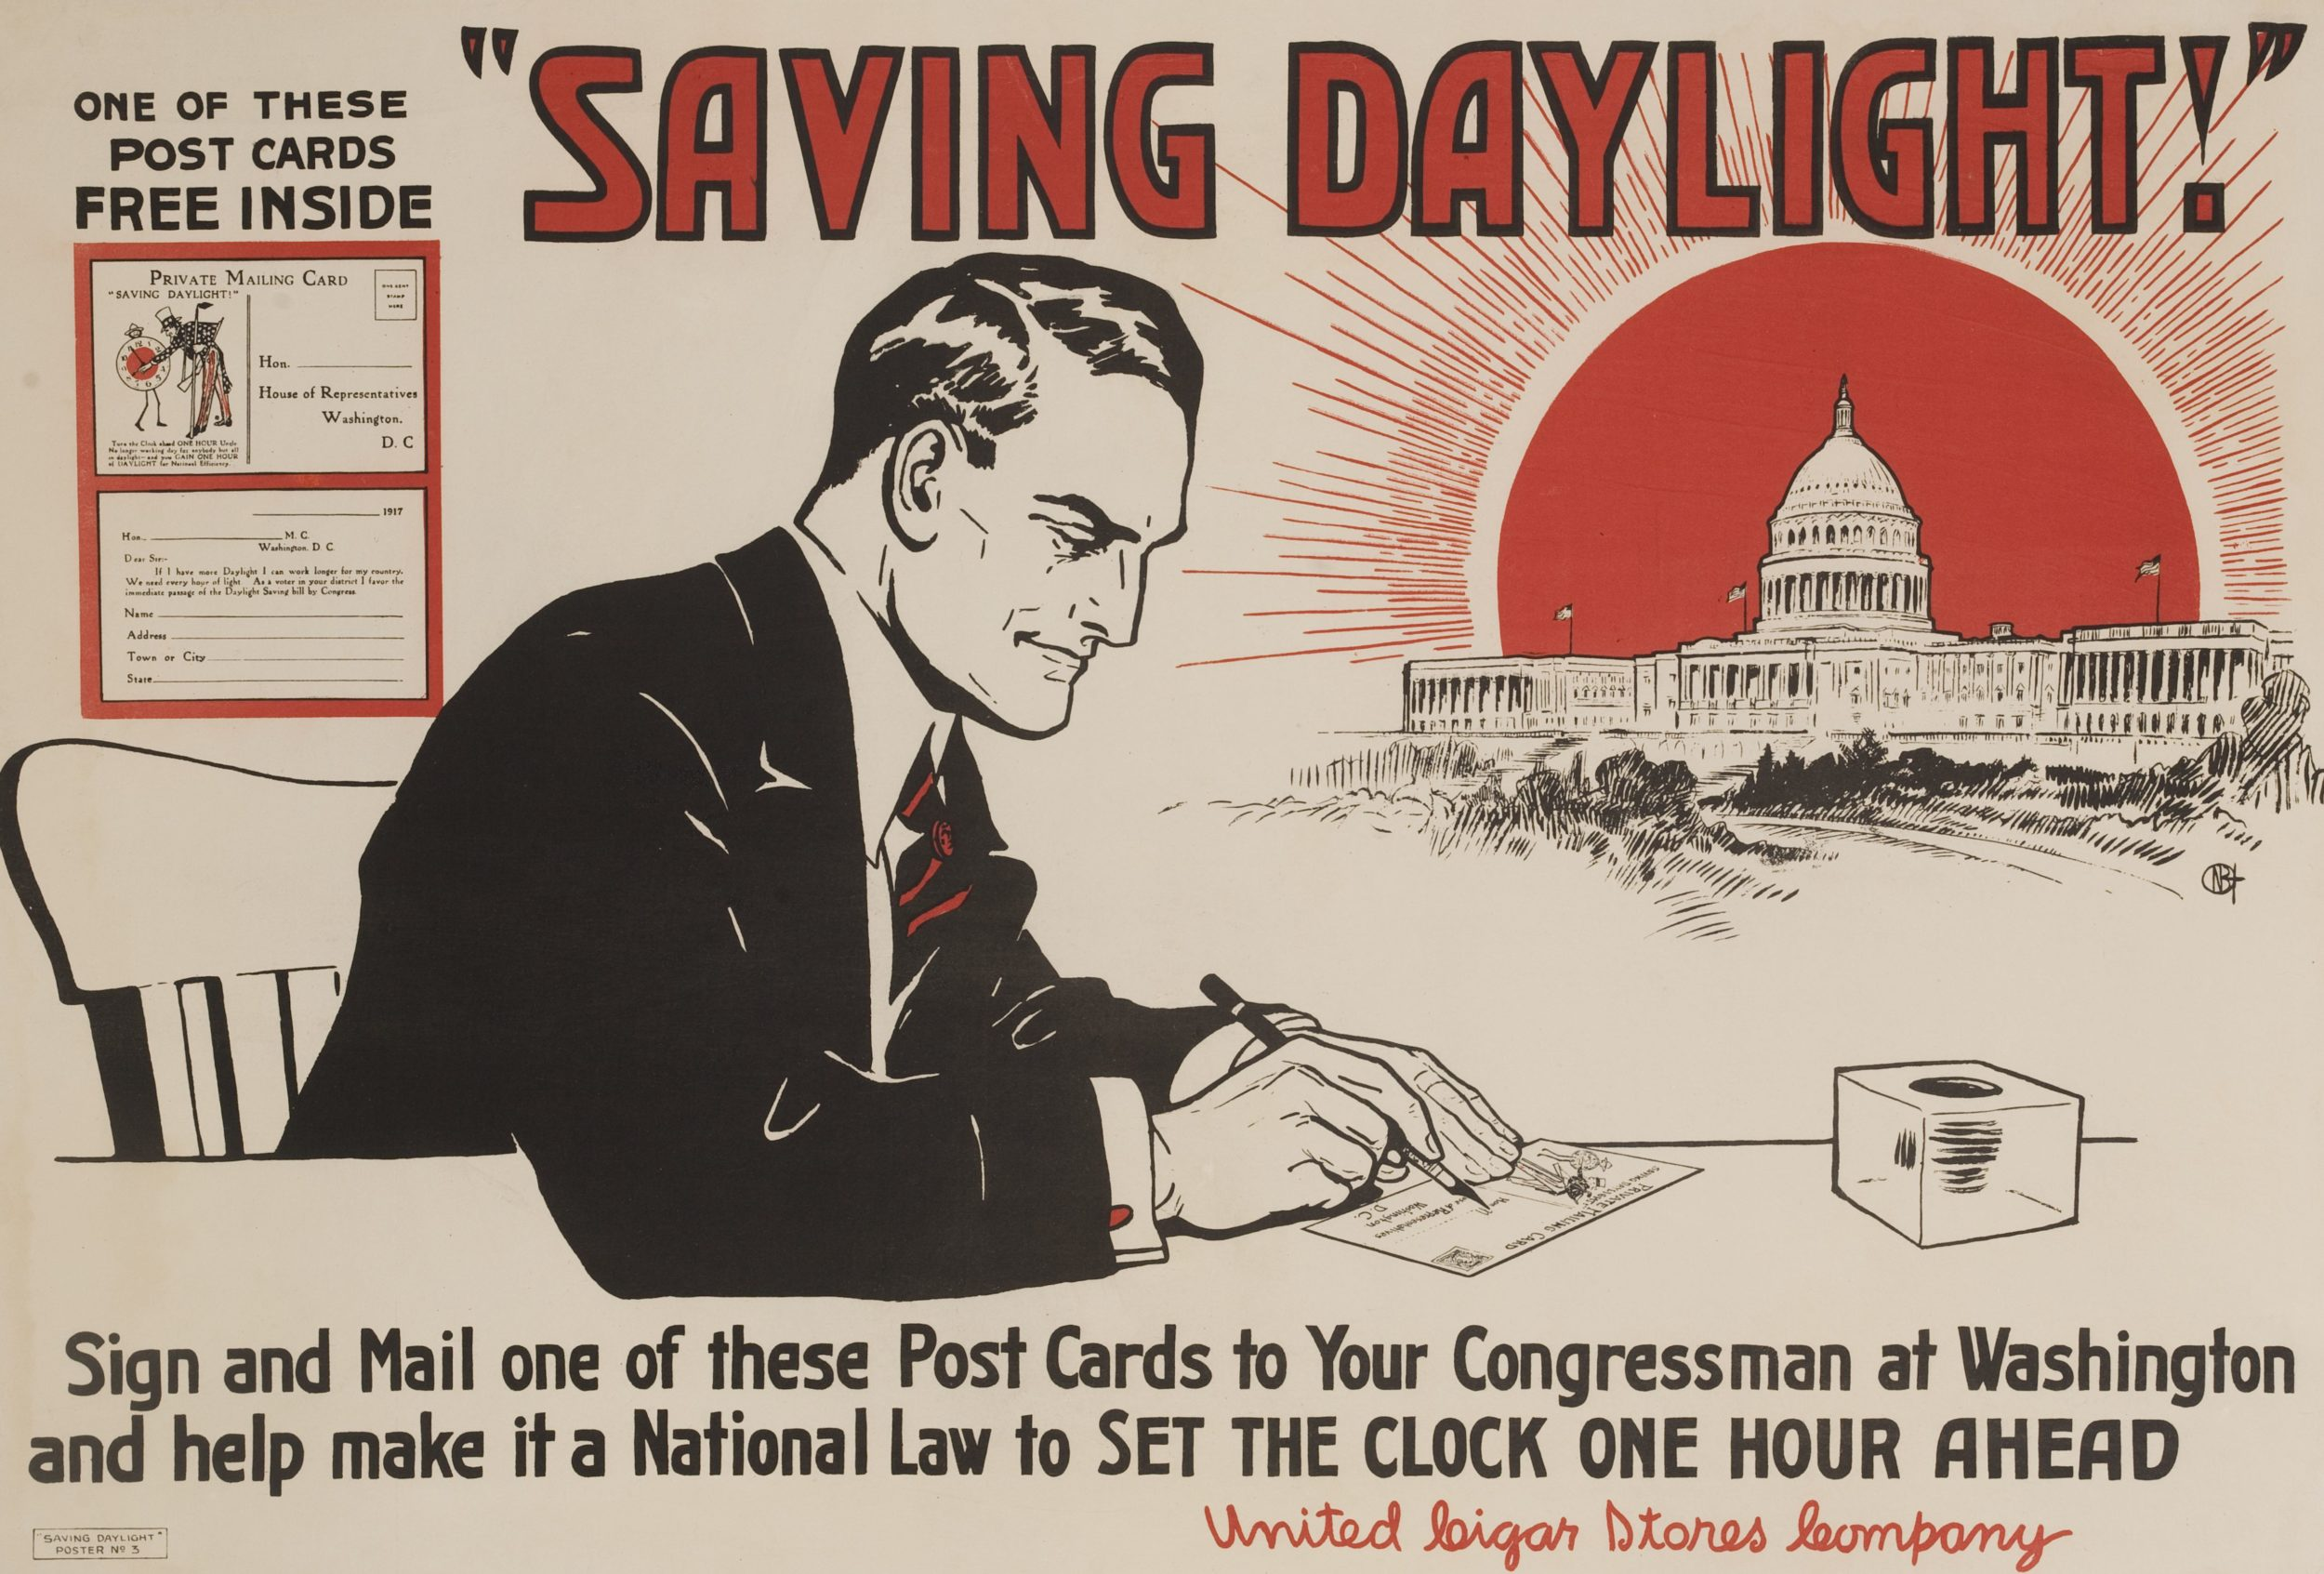 What time does Daylight Savings start? You'll probably be sleeping